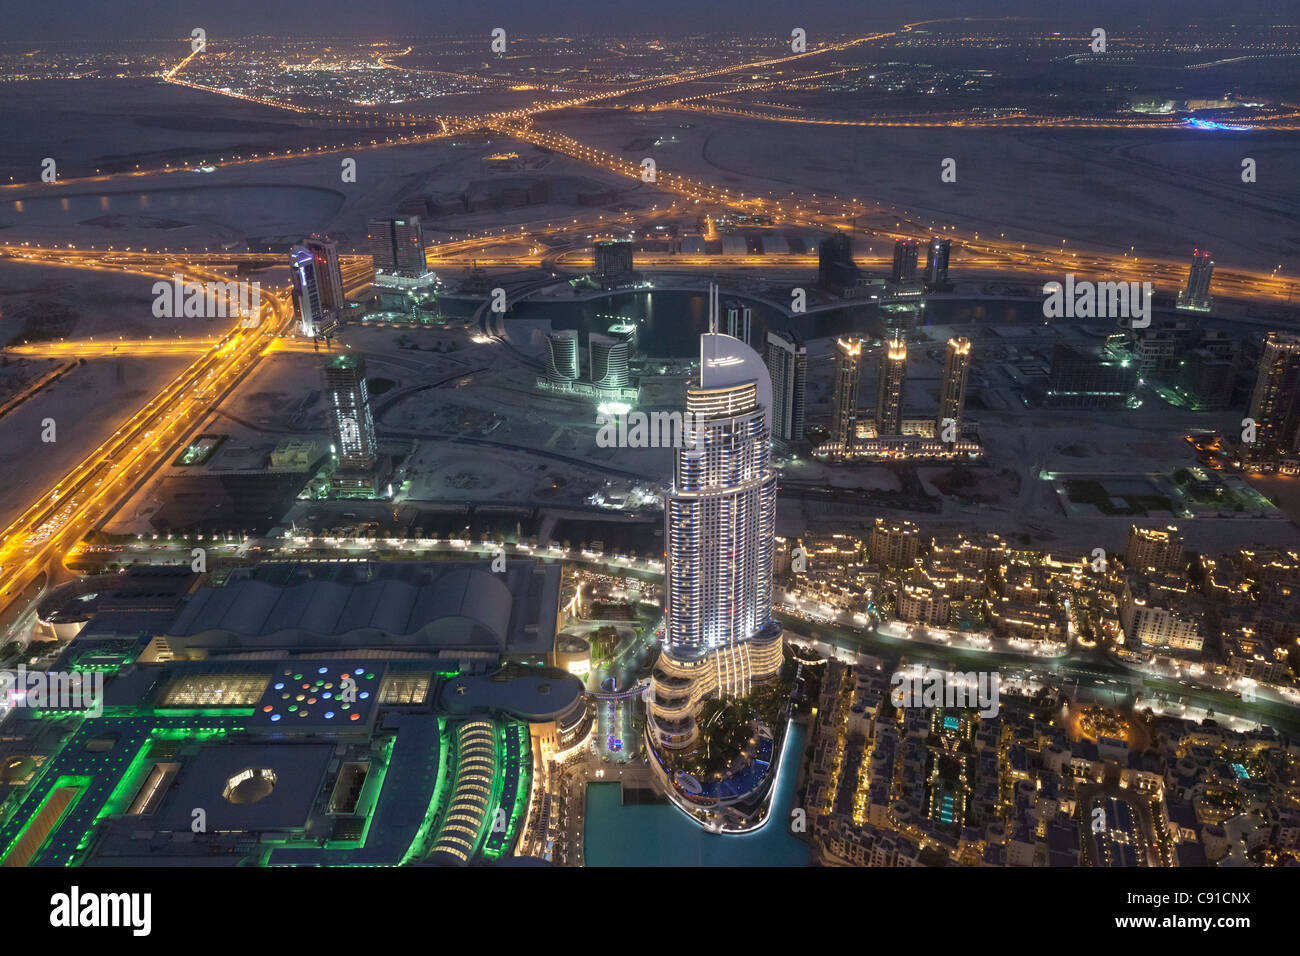 Aerial view of The Address Downtown Dubai in Dubai at night - Stock Image